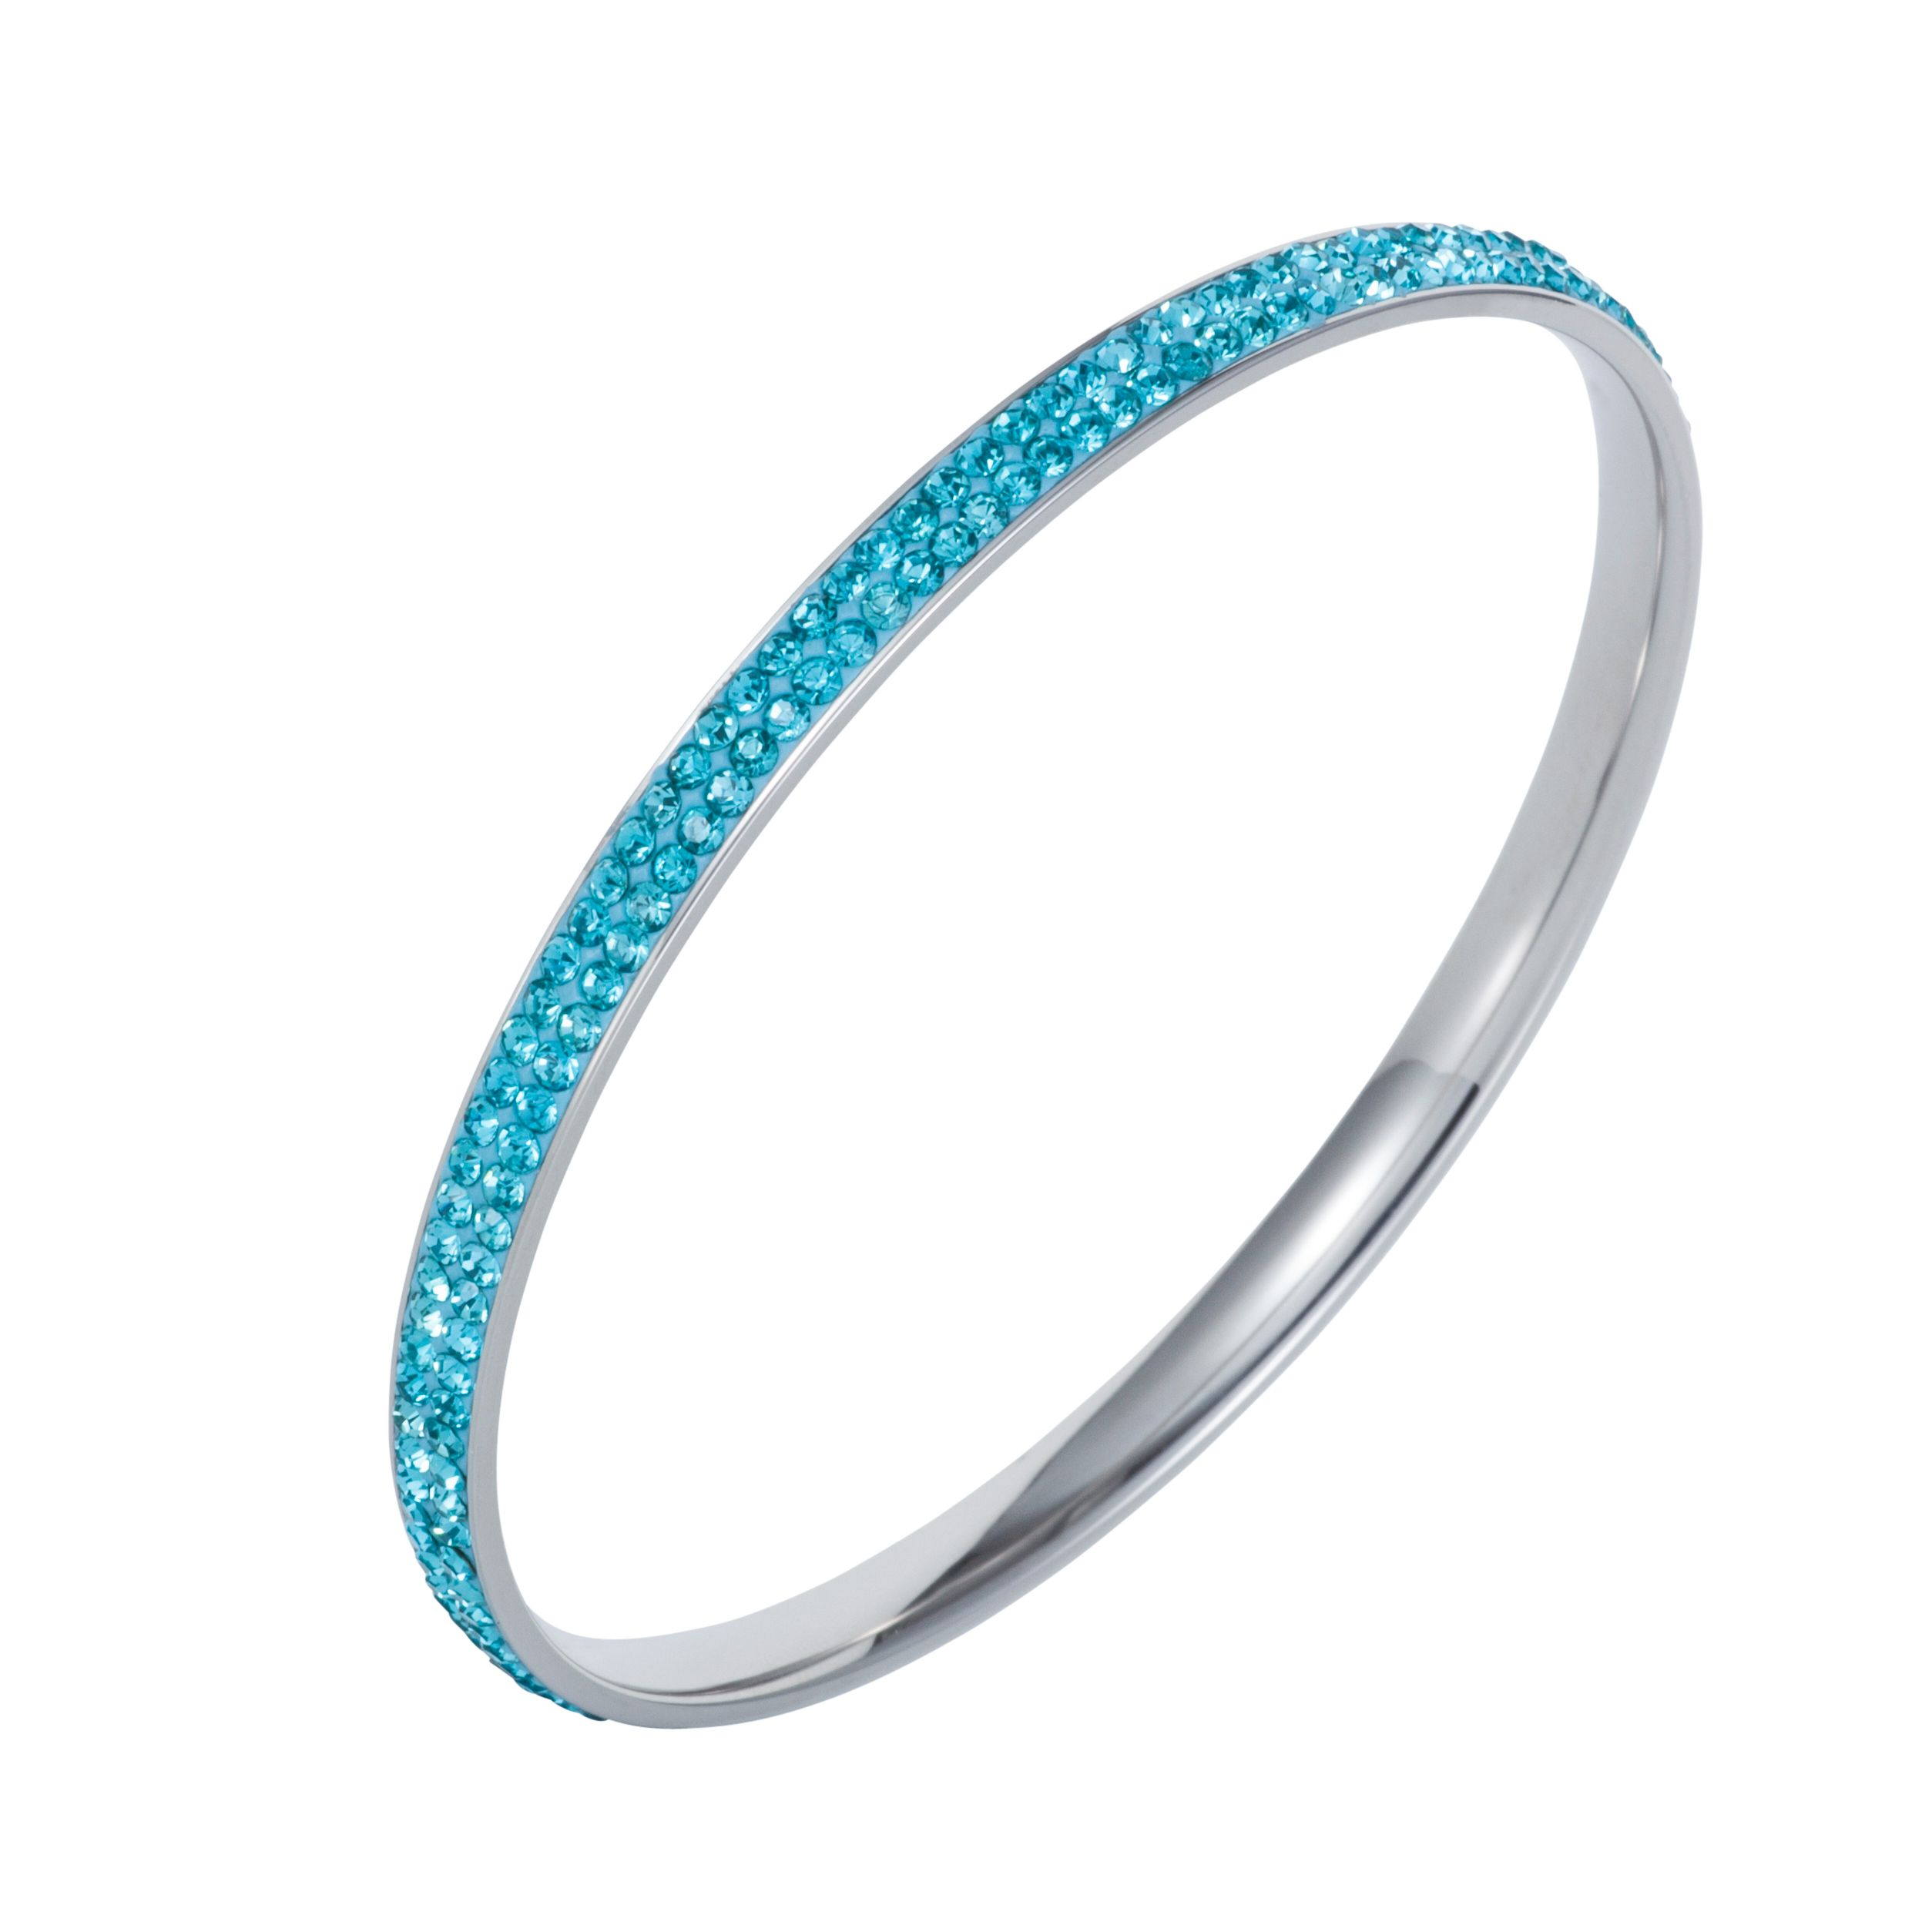 Stainless steel cubic zirconia turquoise bangle